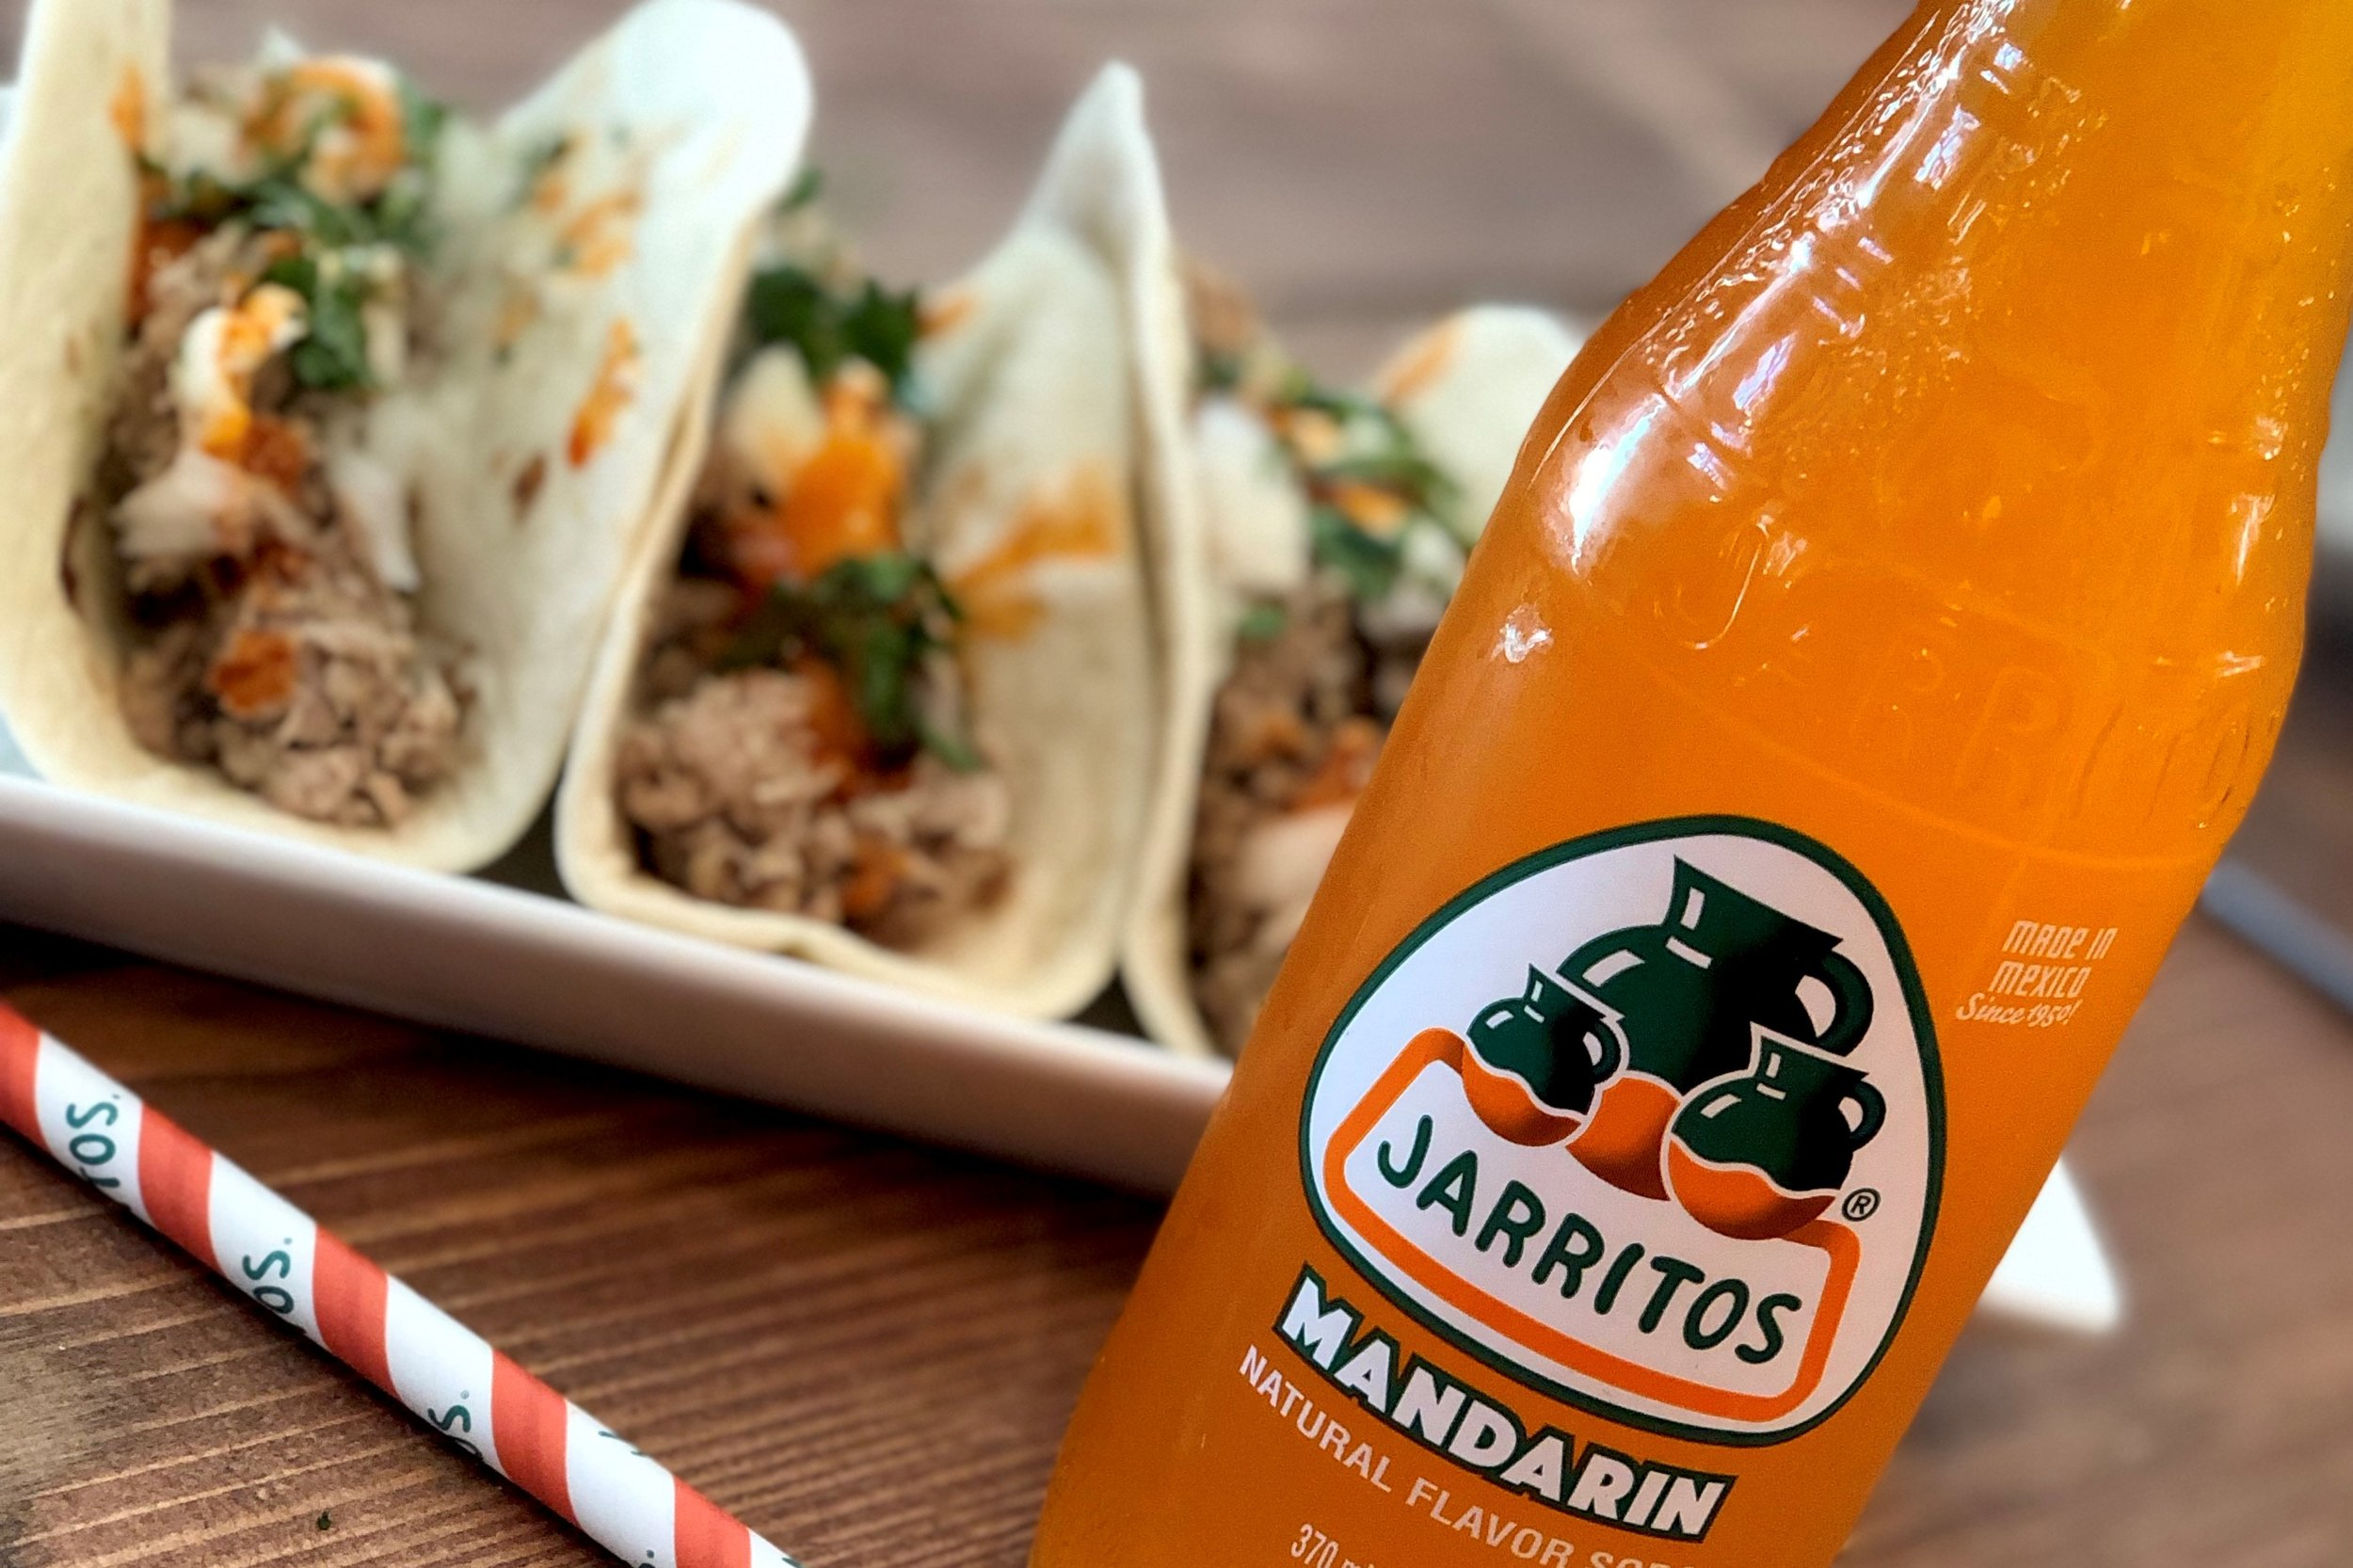 El Loco Taco and Jarritos.jpg